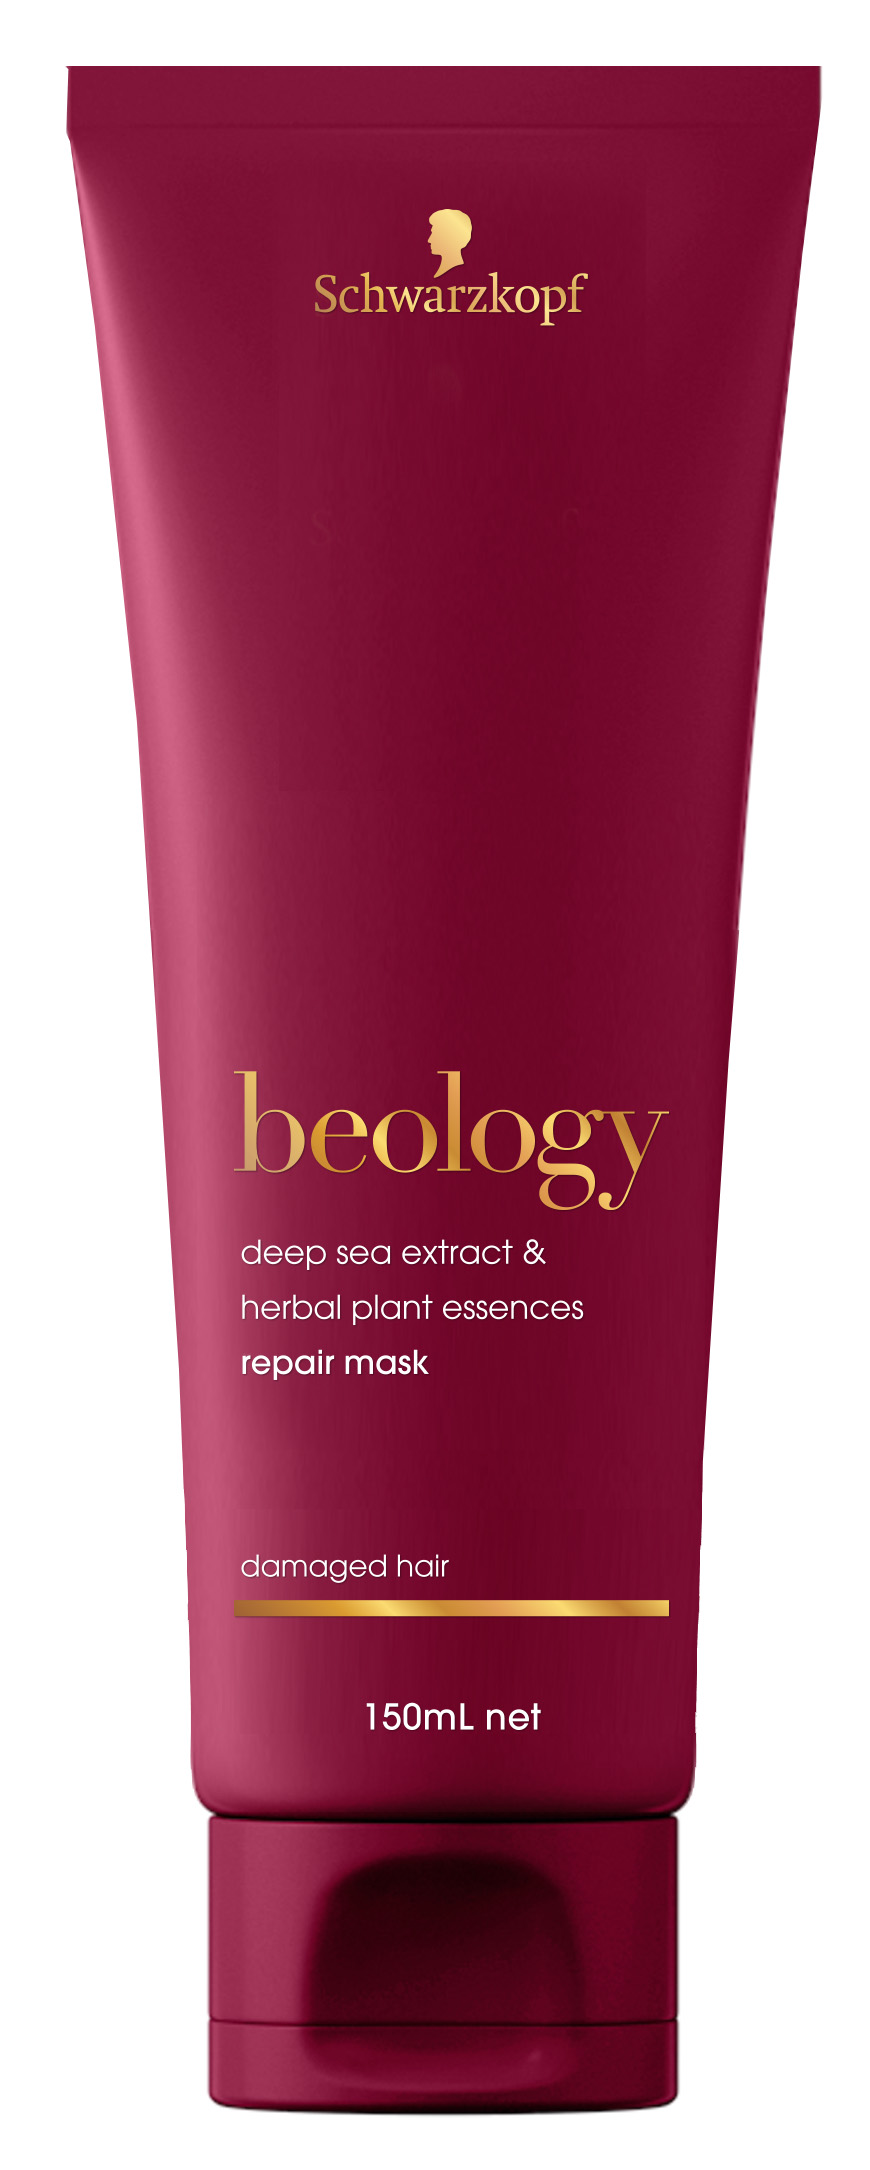 Beology_Repair_Mask_150ml copy